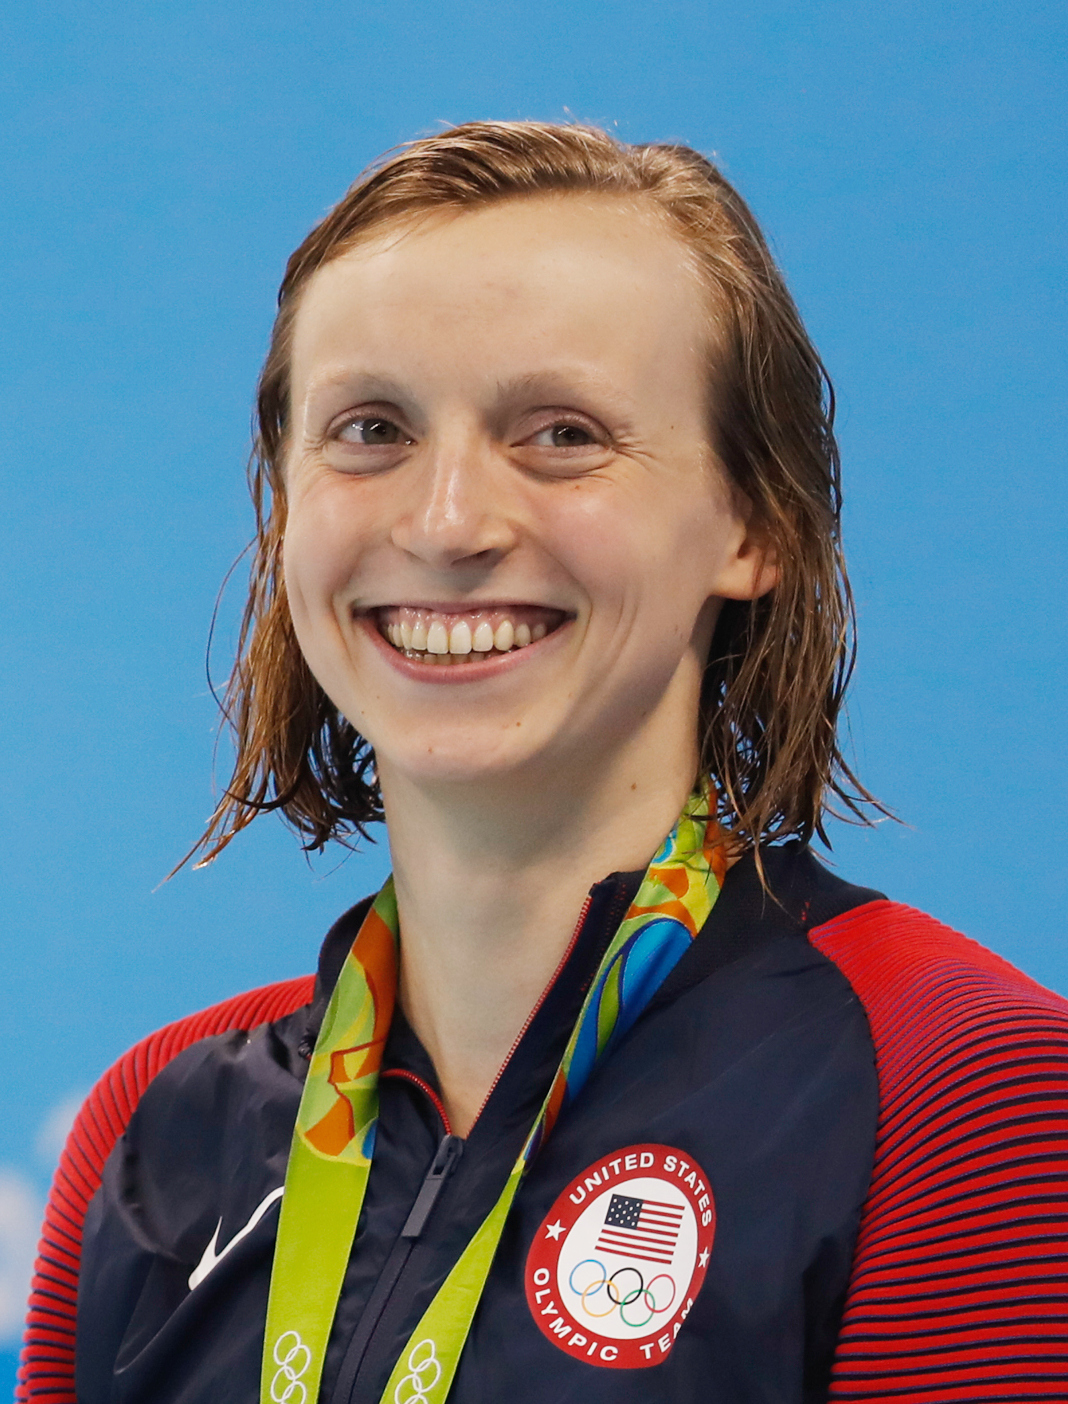 american olympic swimmers, all american swimmers, pro swimmers, olympic swimemrs, olympic athletes, top olympic swimmers, katie ledecky, olympian